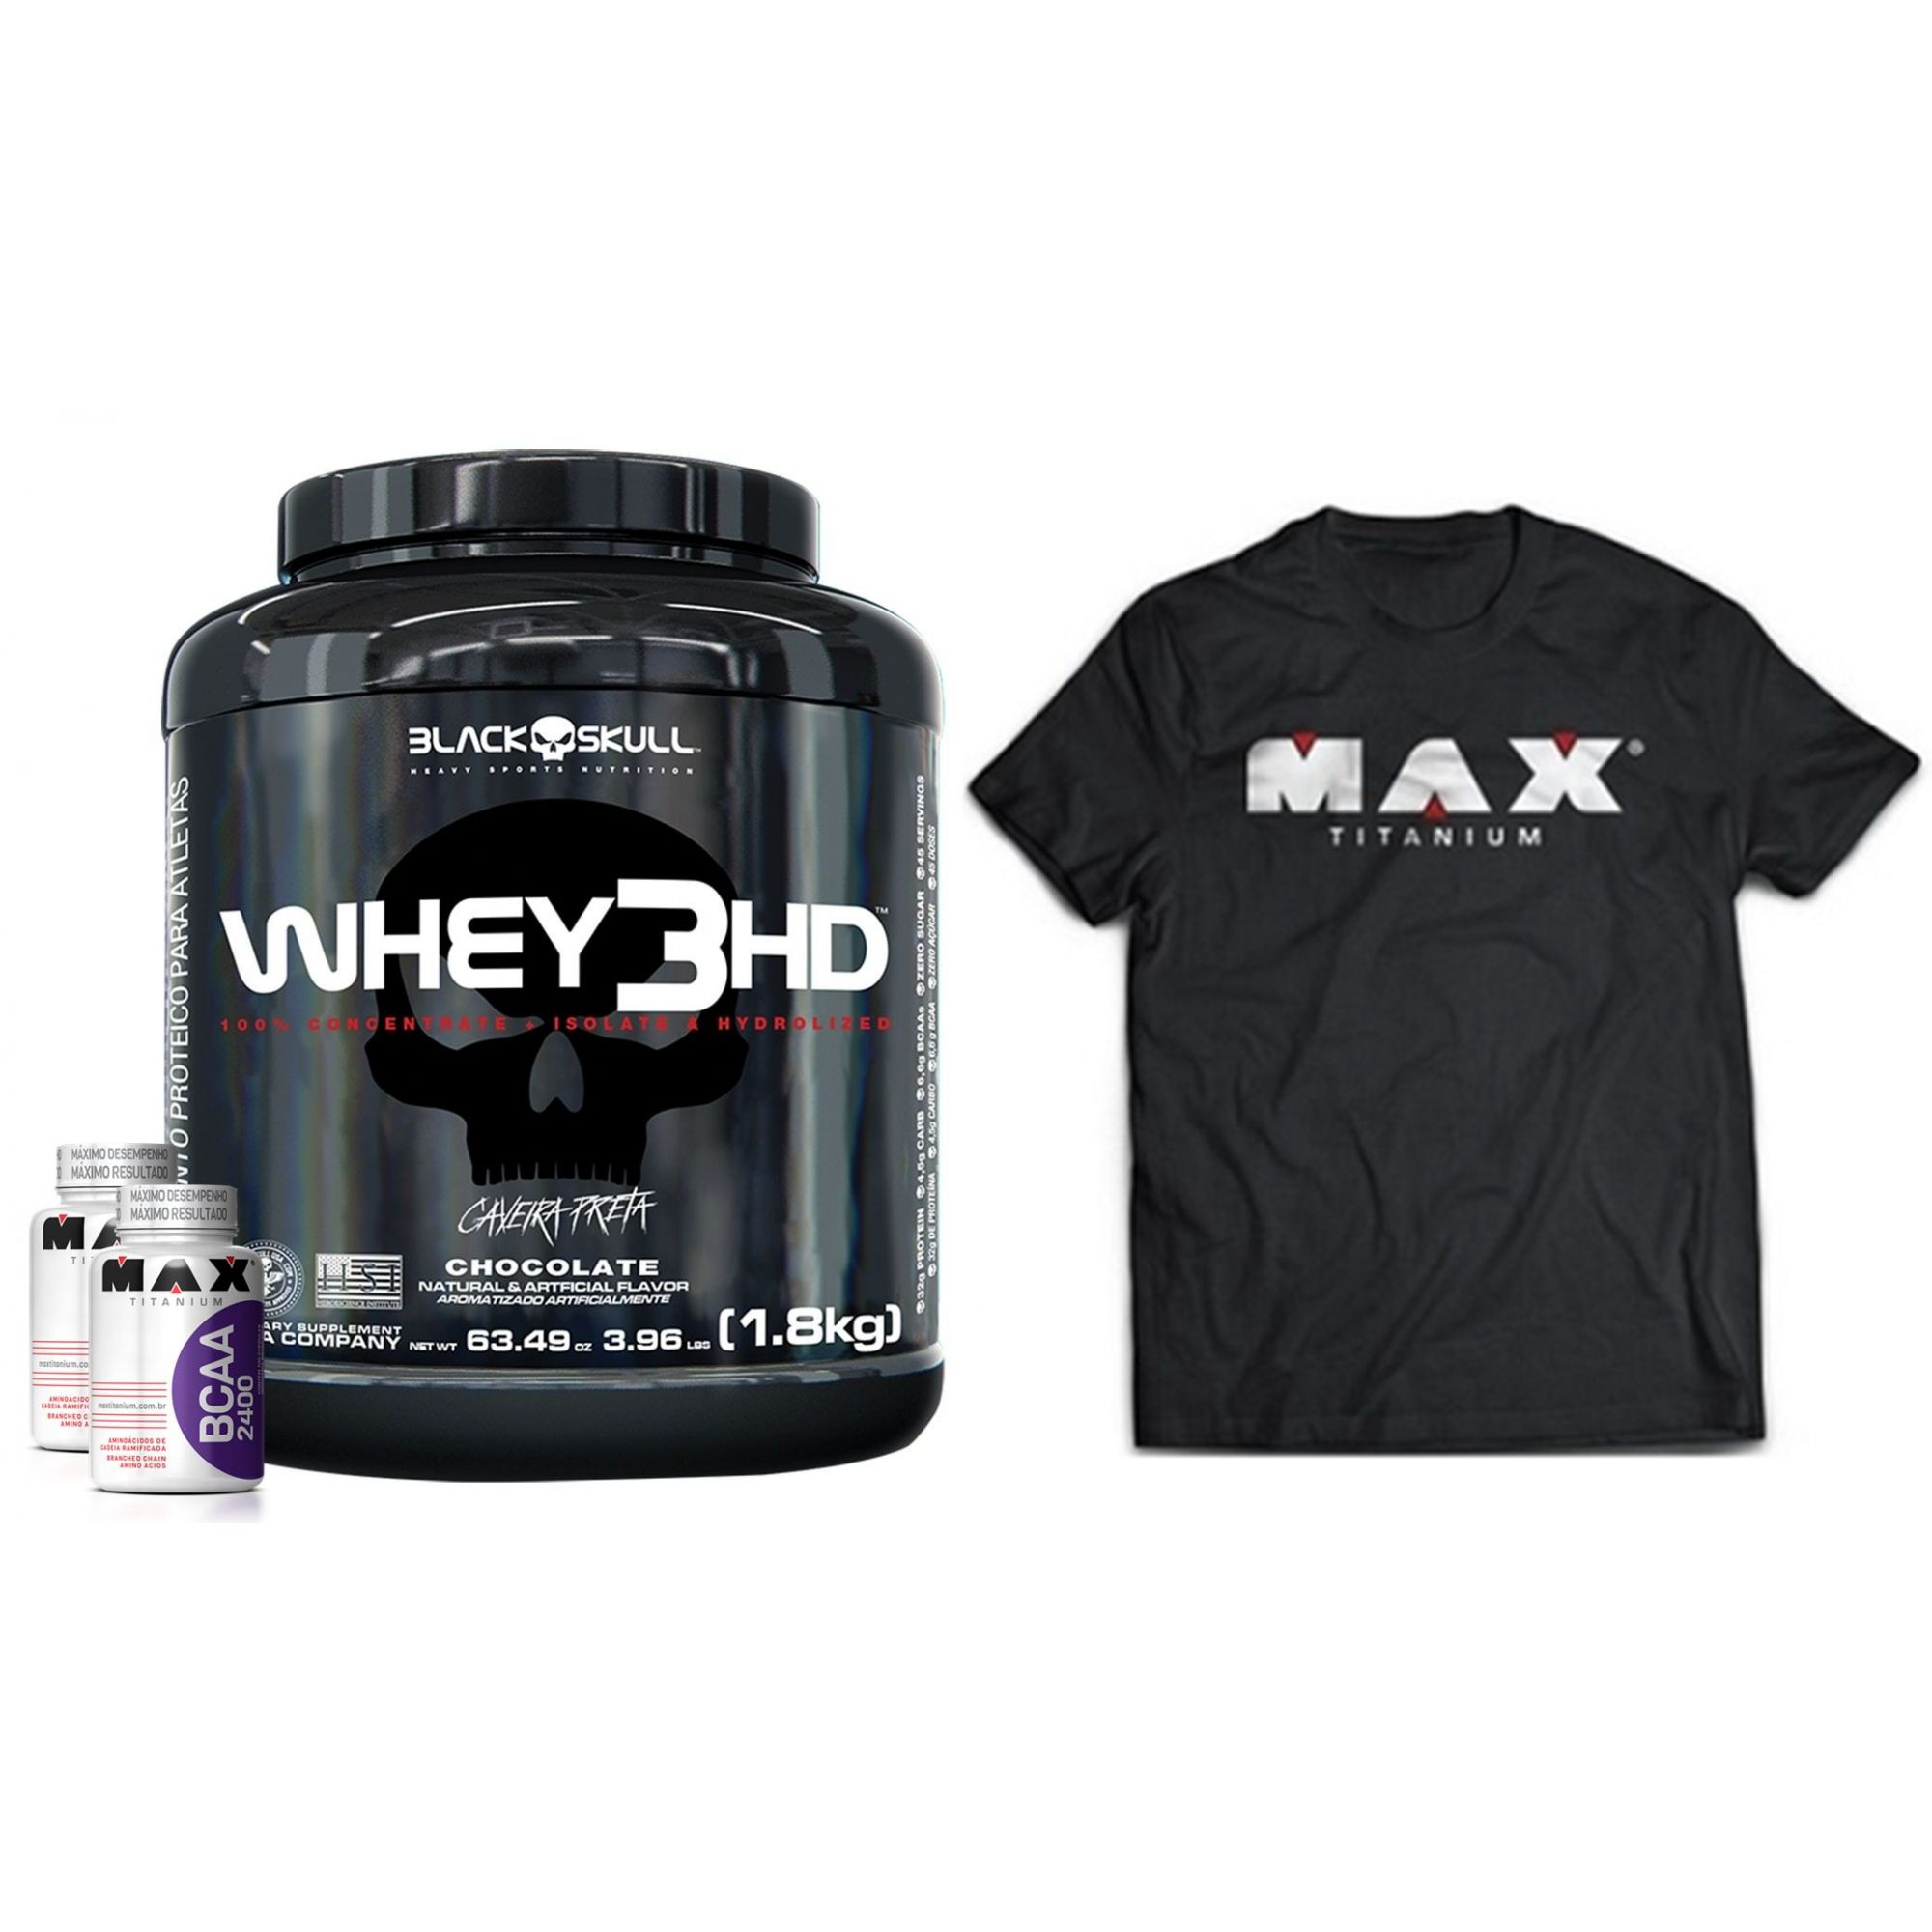 KIT: Whey 3HD 1,8kg + BCAA 120 Caps + Camisa